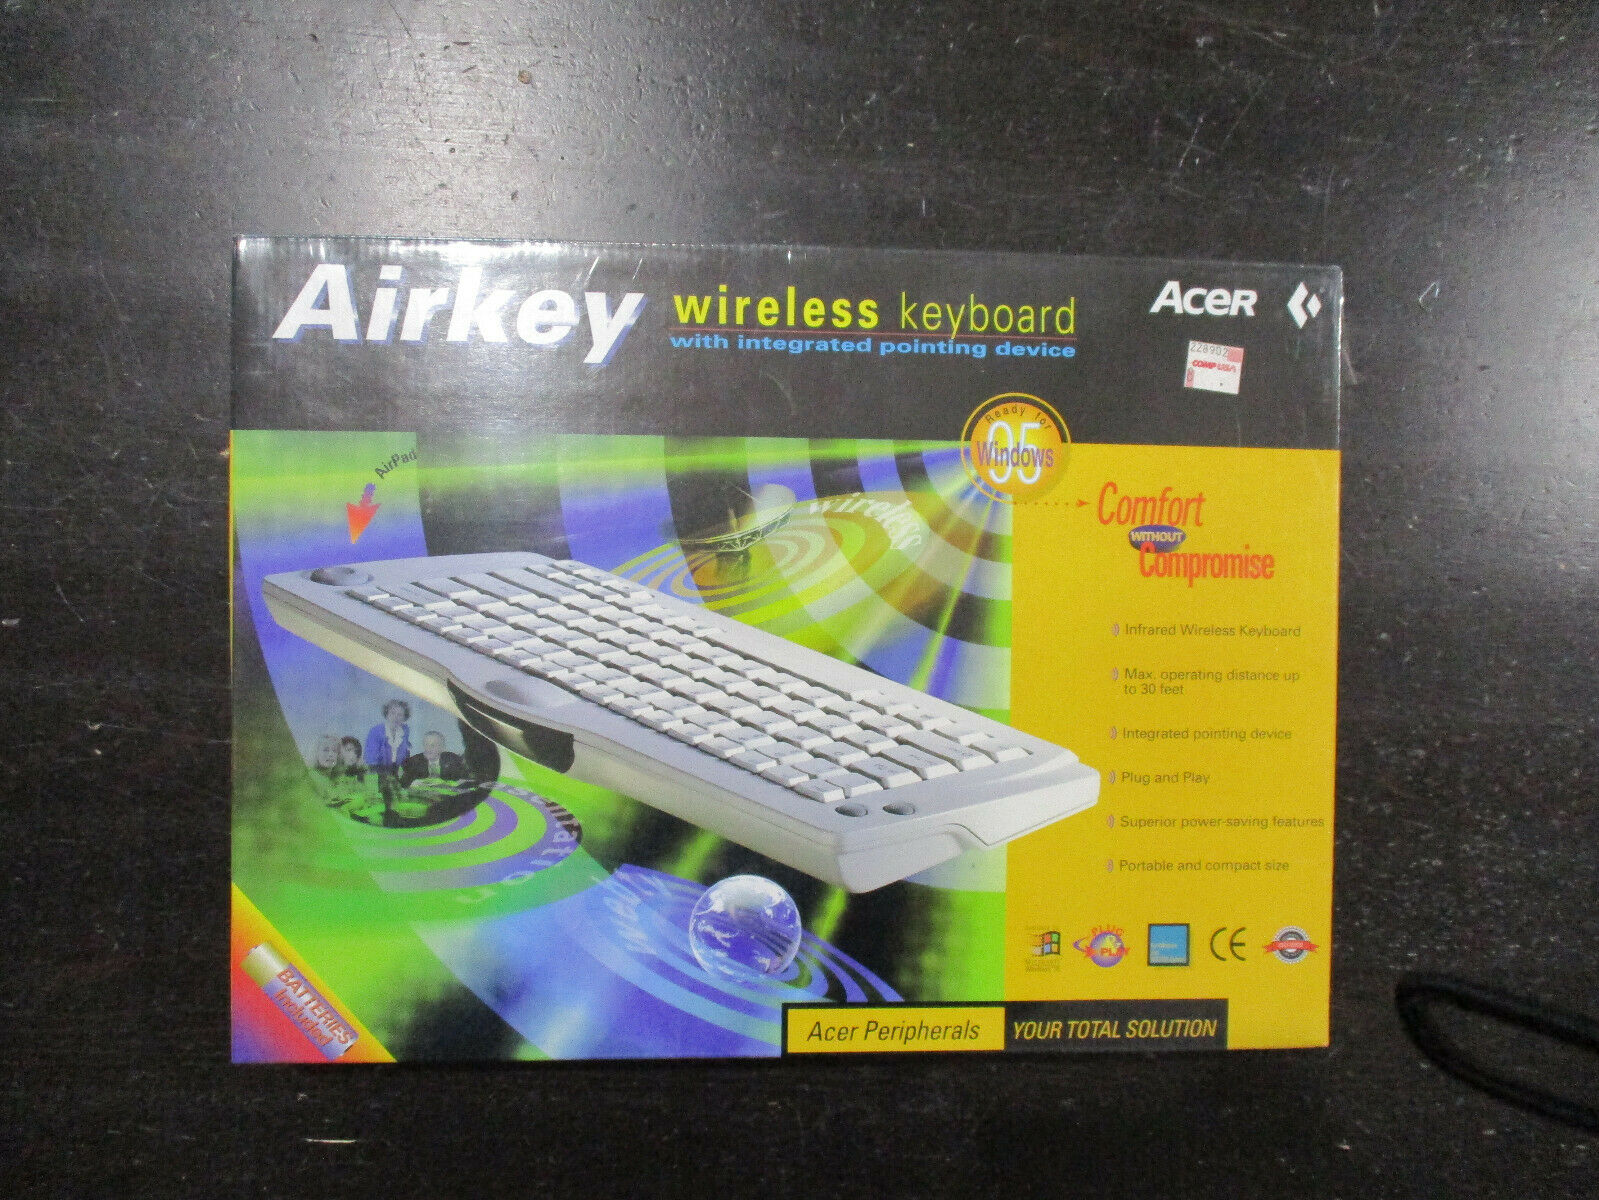 NEW Acer Airkey Infrared Wireless Keyboard Integrated Pointi